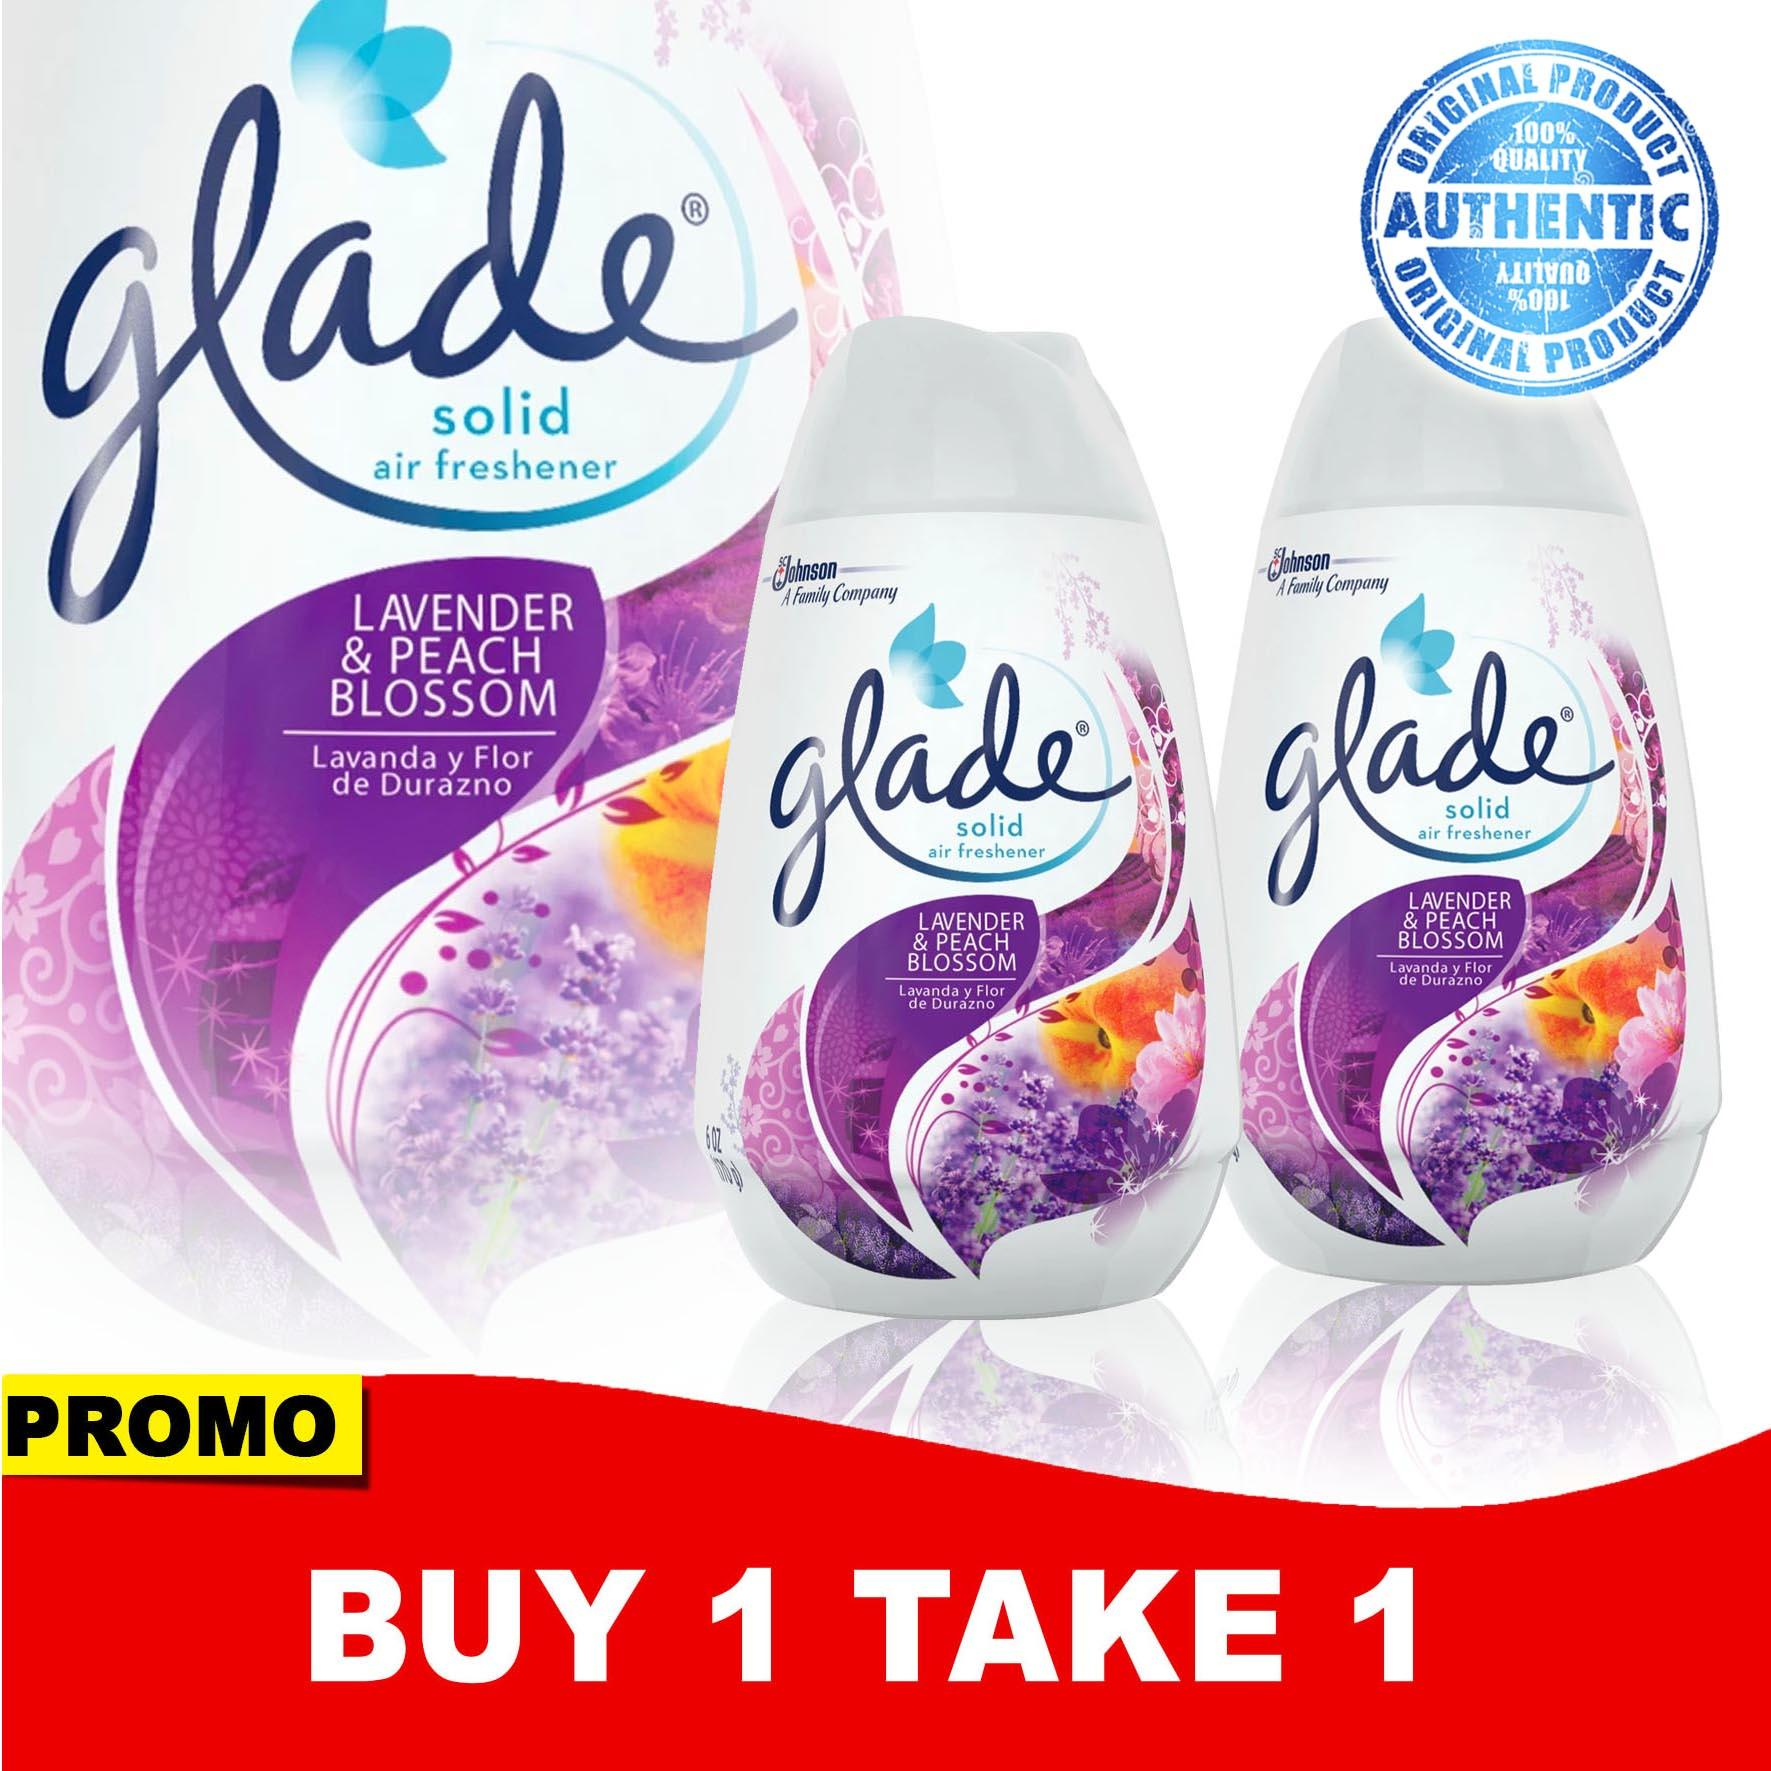 Buy 1 Take 1 Glade Lavender & Peach Blossom Solid Air Freshener 170g By Manmico-Health And Beauty.